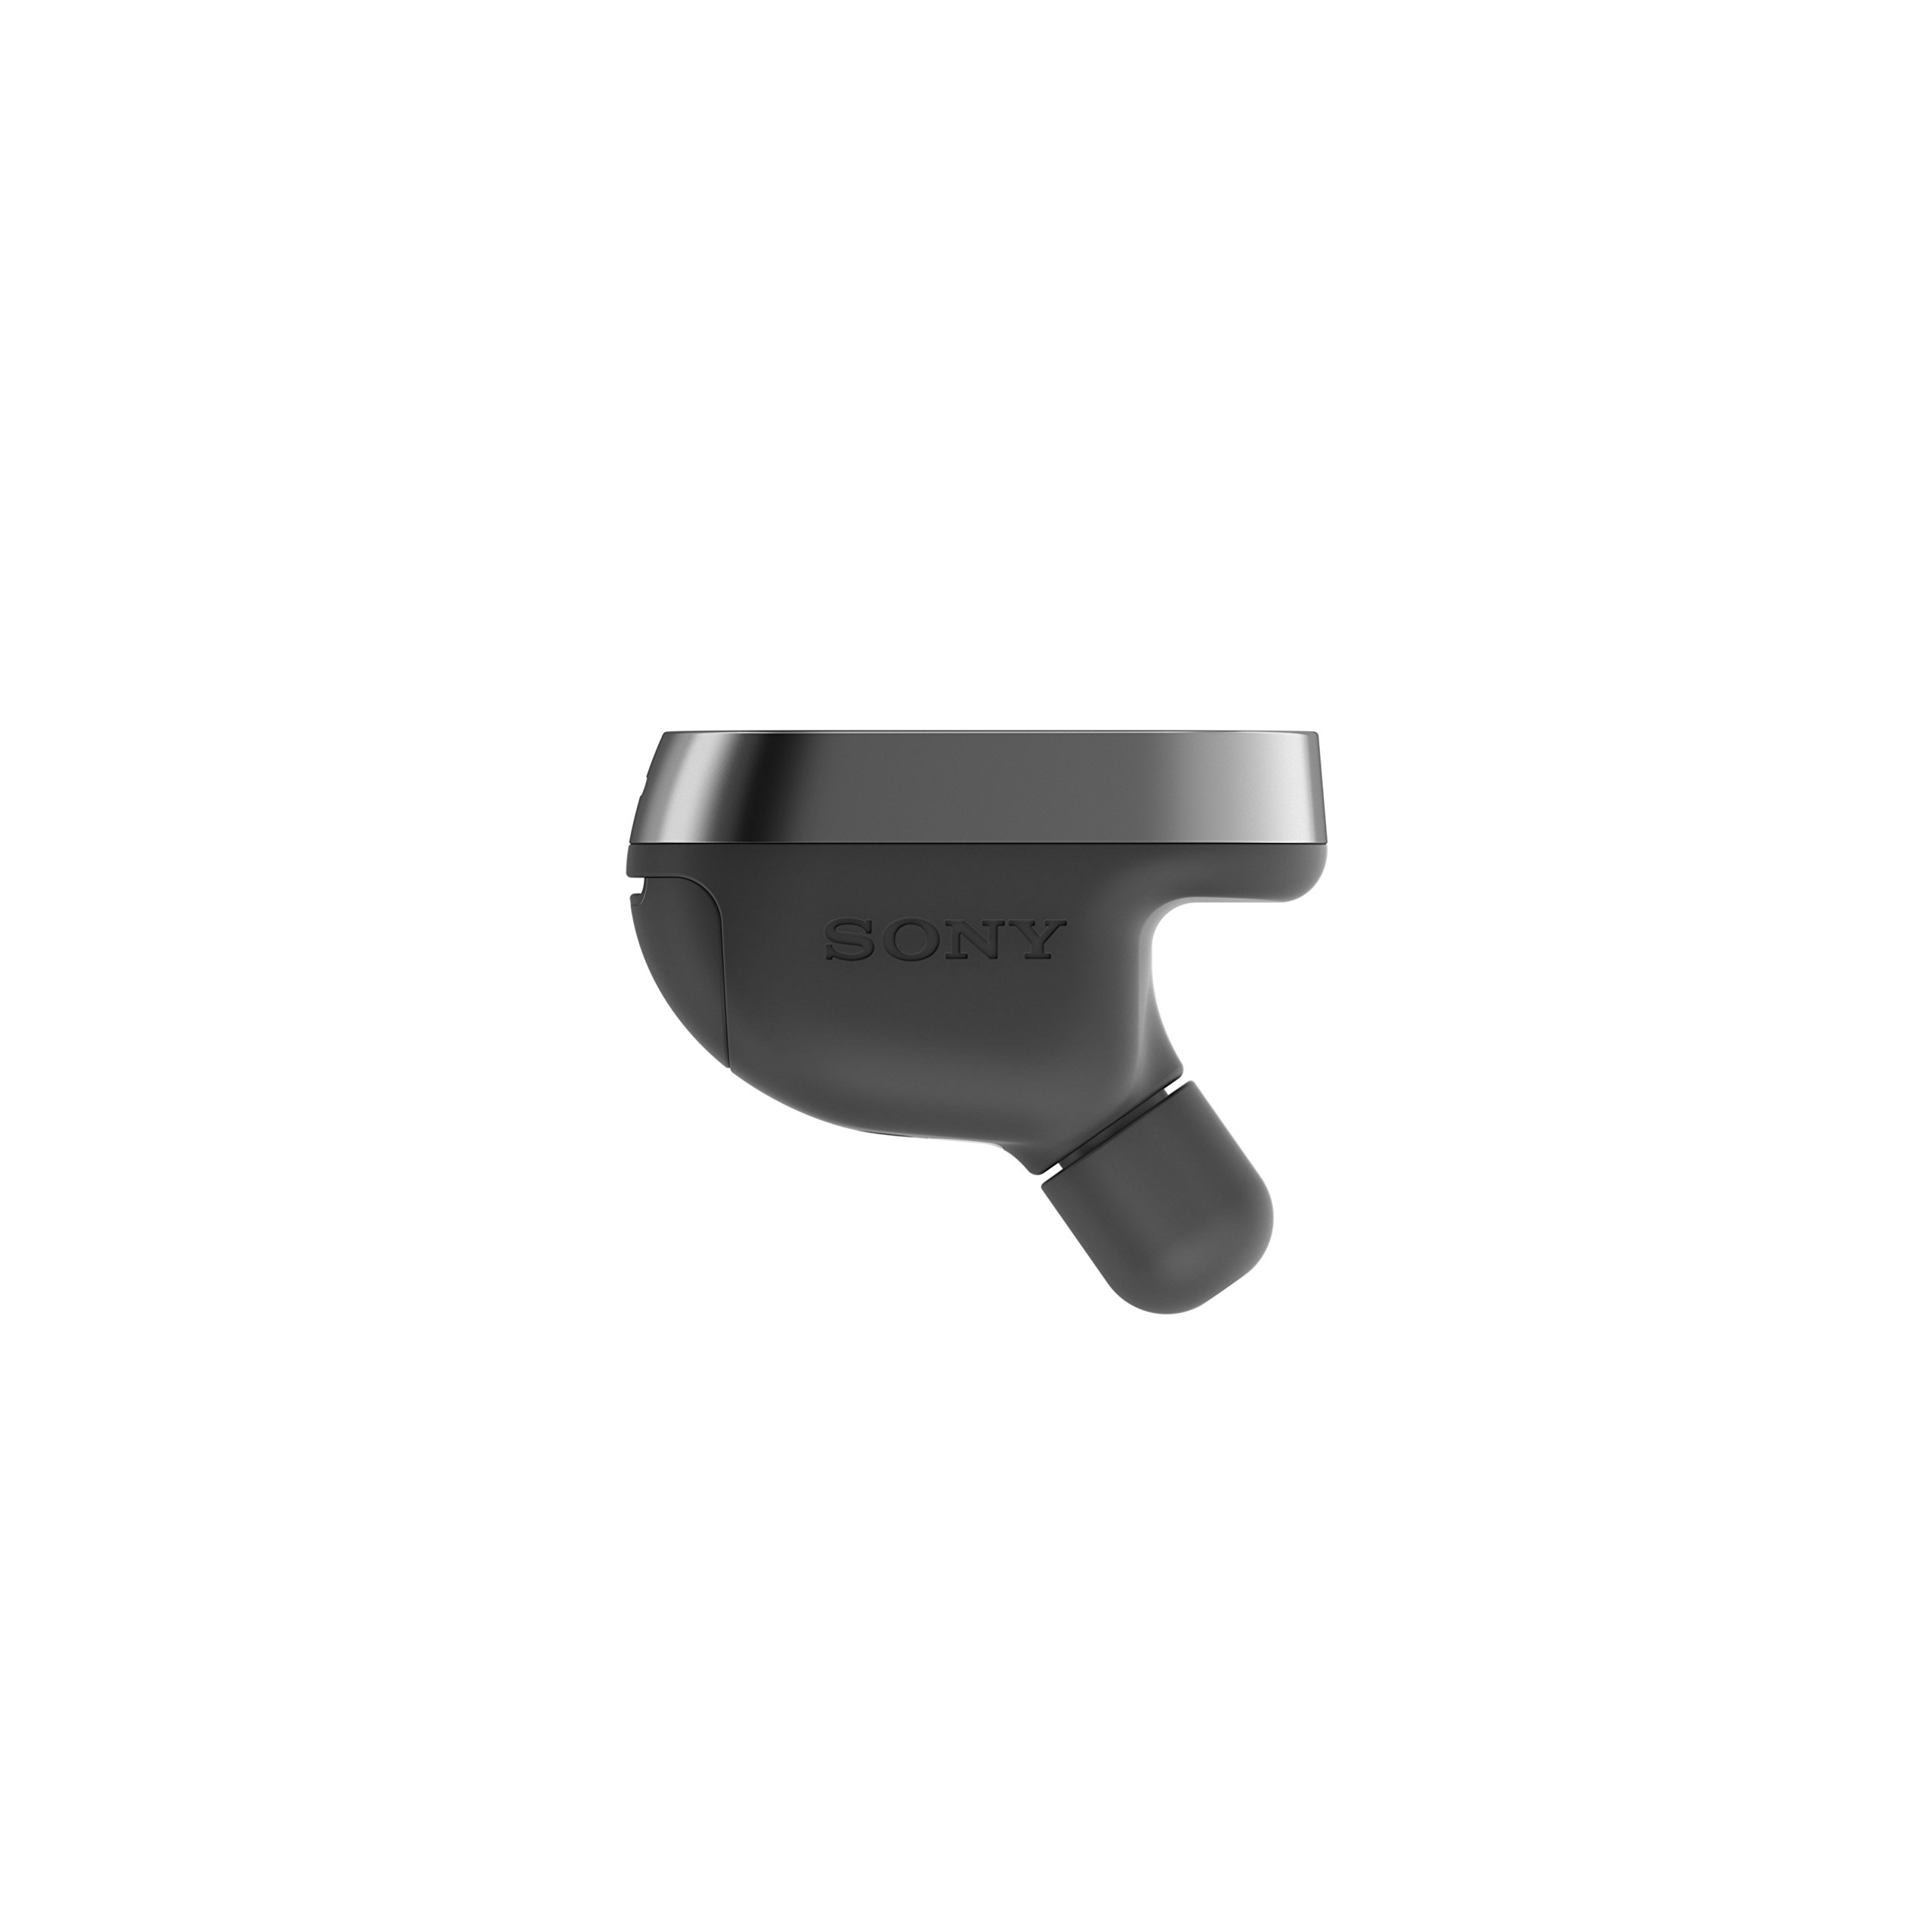 Sony Xperia Ear for Android Smartphones - Graphite Black by Sony